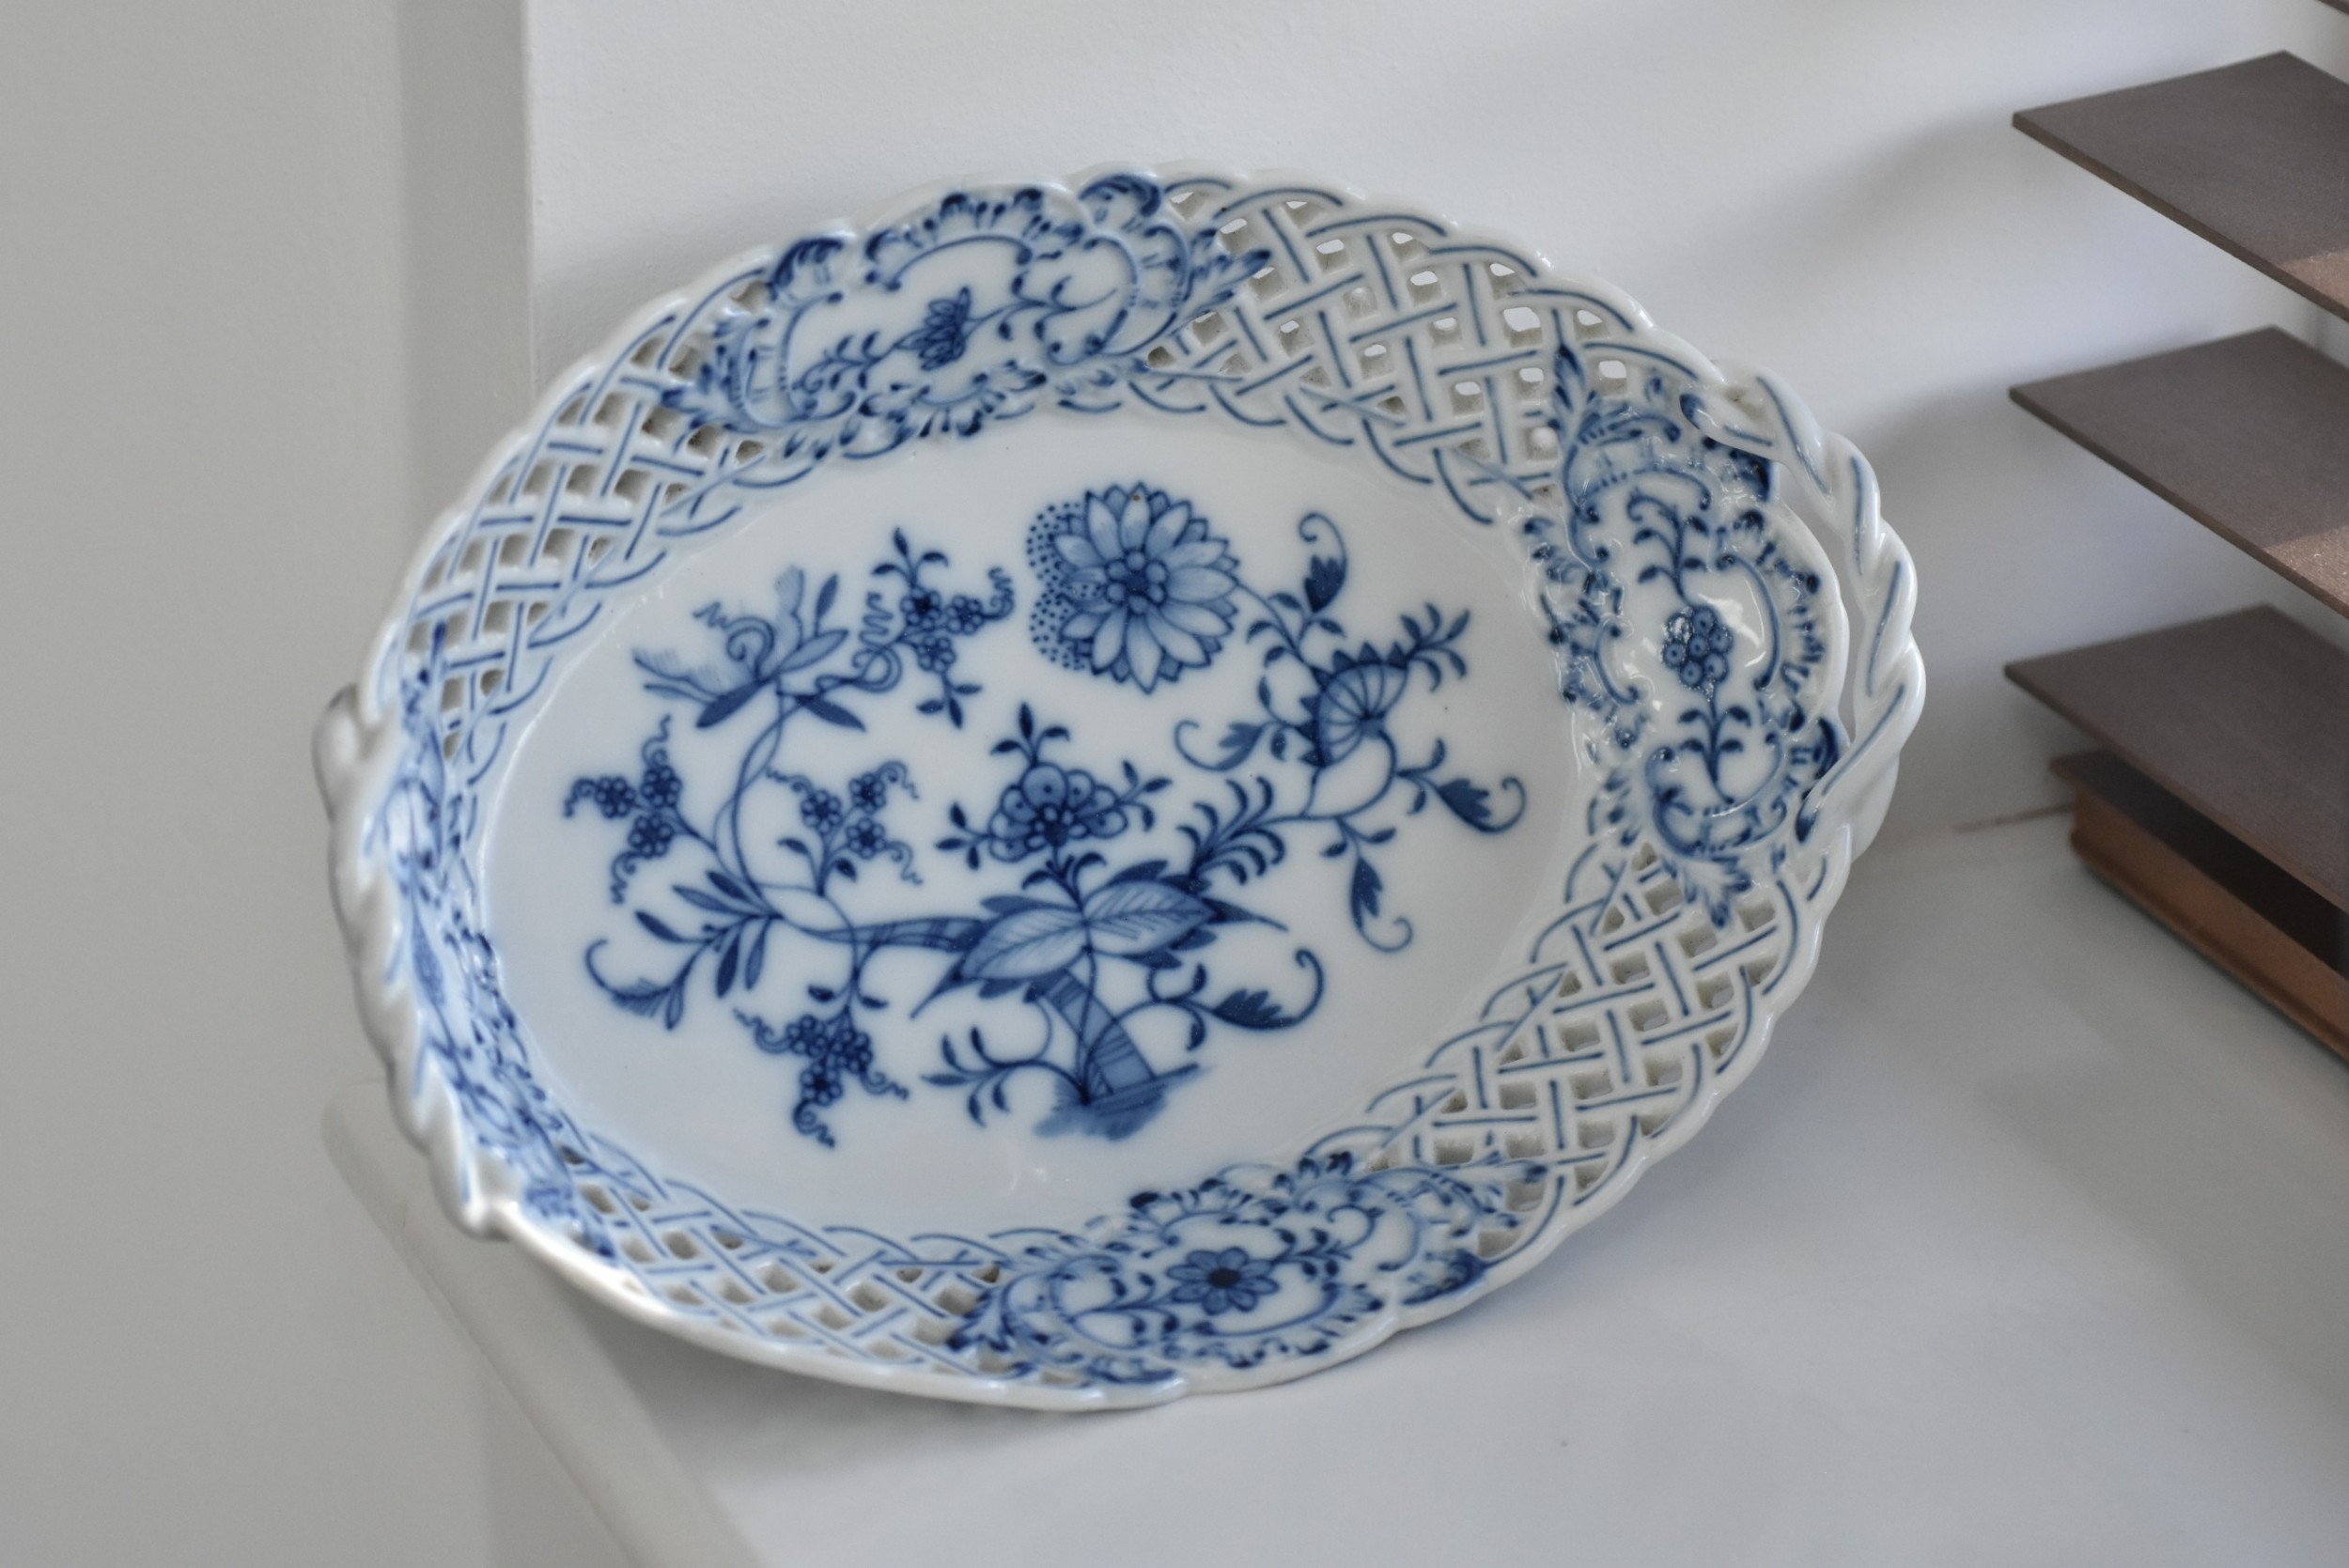 meissen onion pattern reticulated oval dish c1900